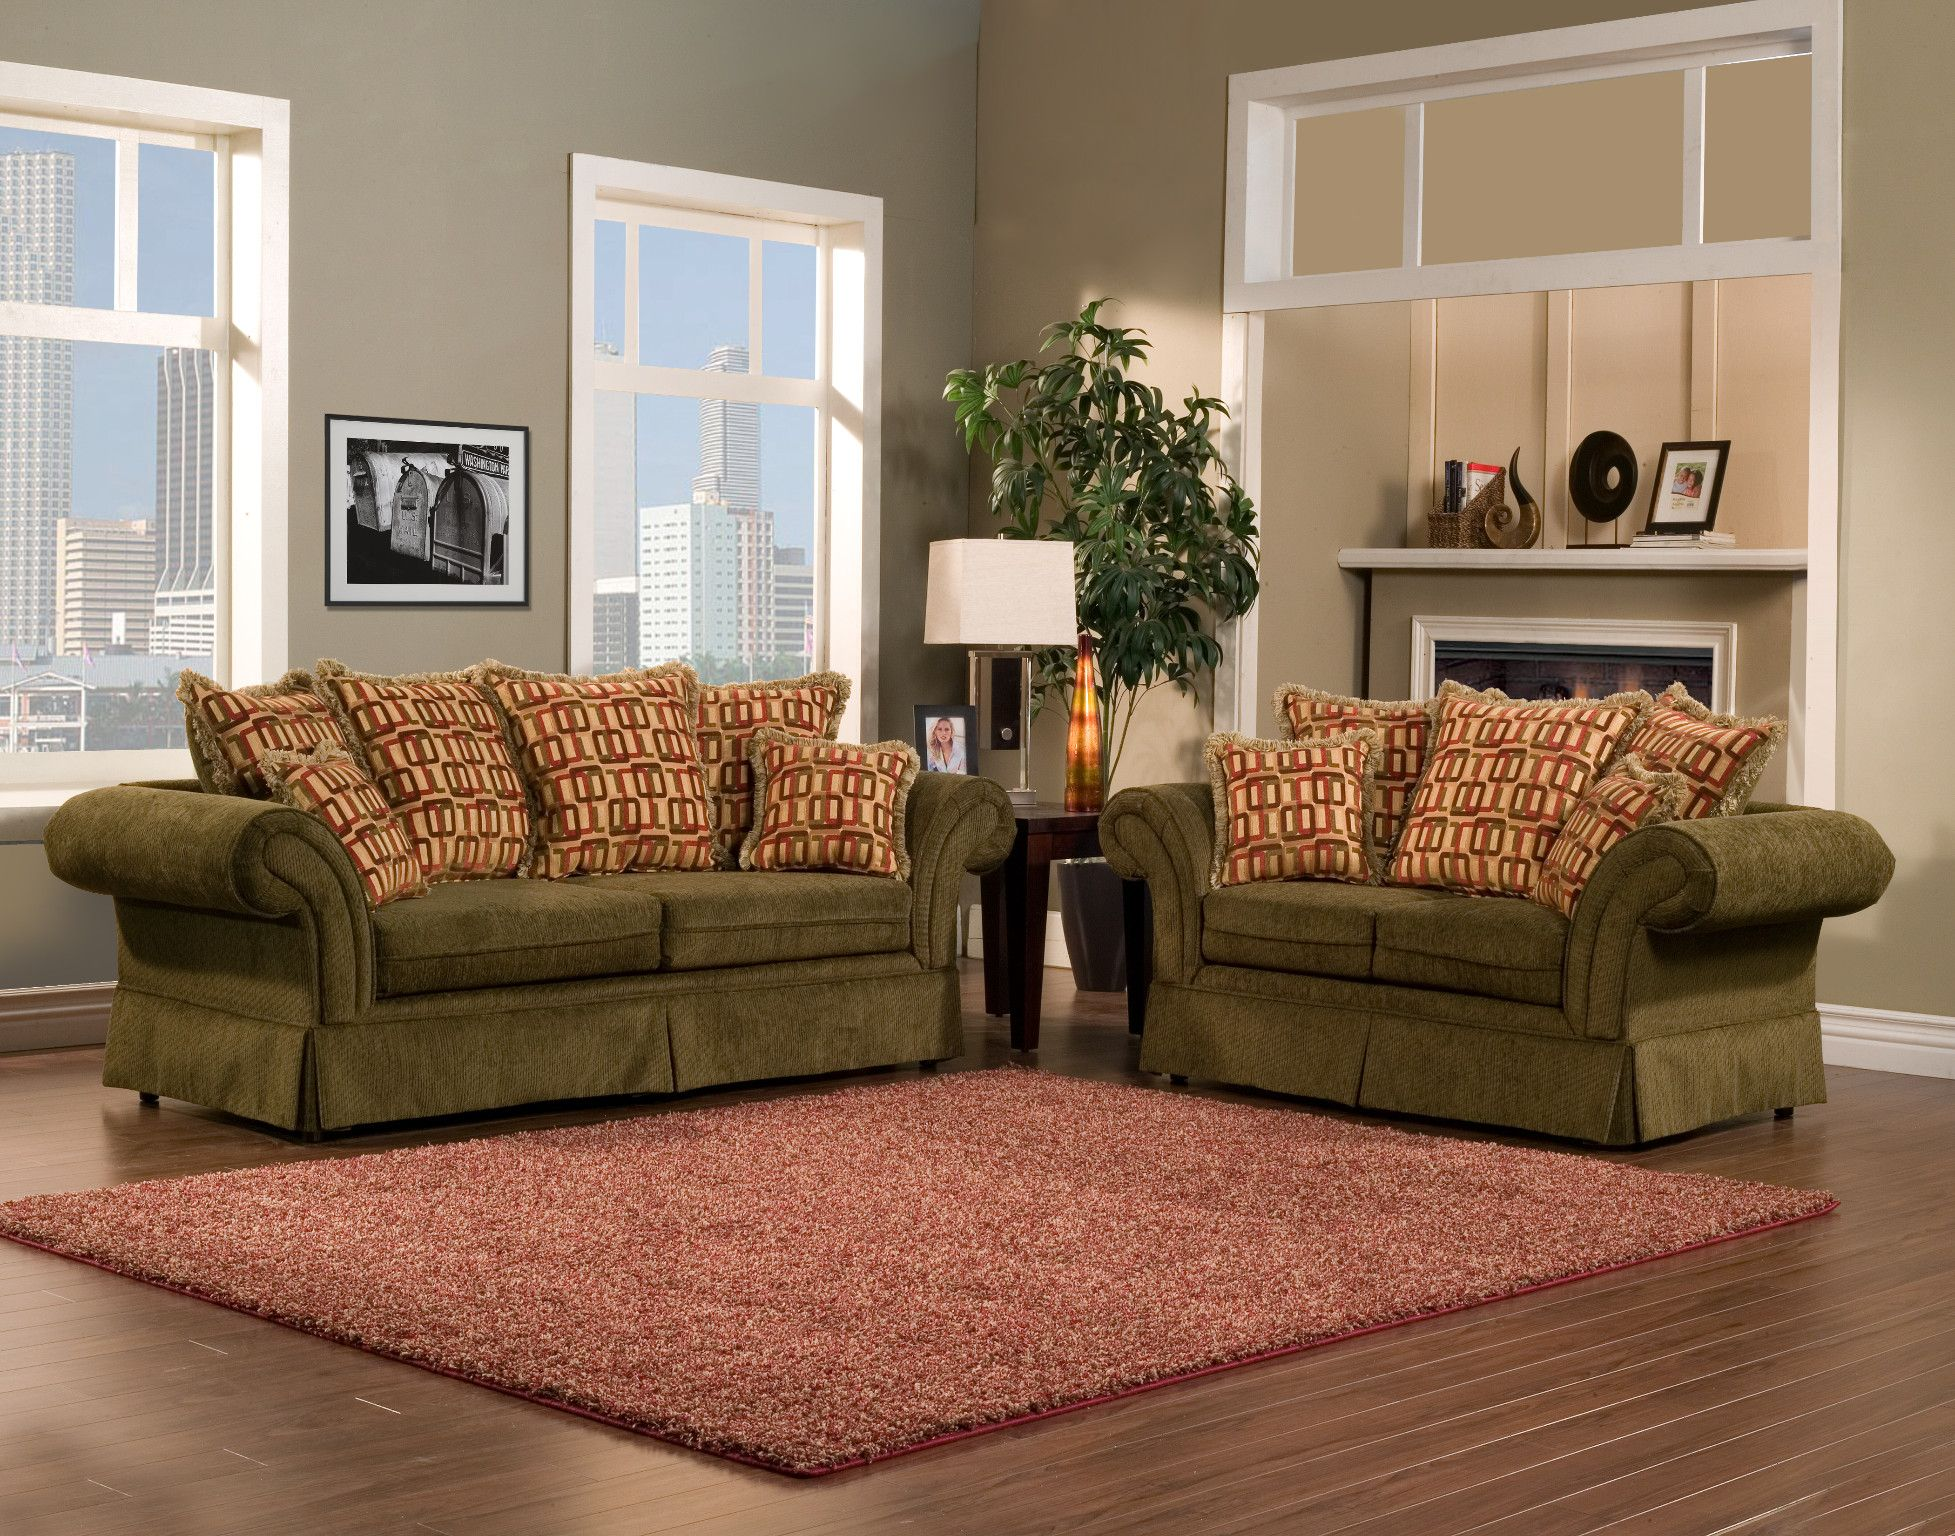 Pleasureable Olive Green Fabric Traditional Sofa With Red